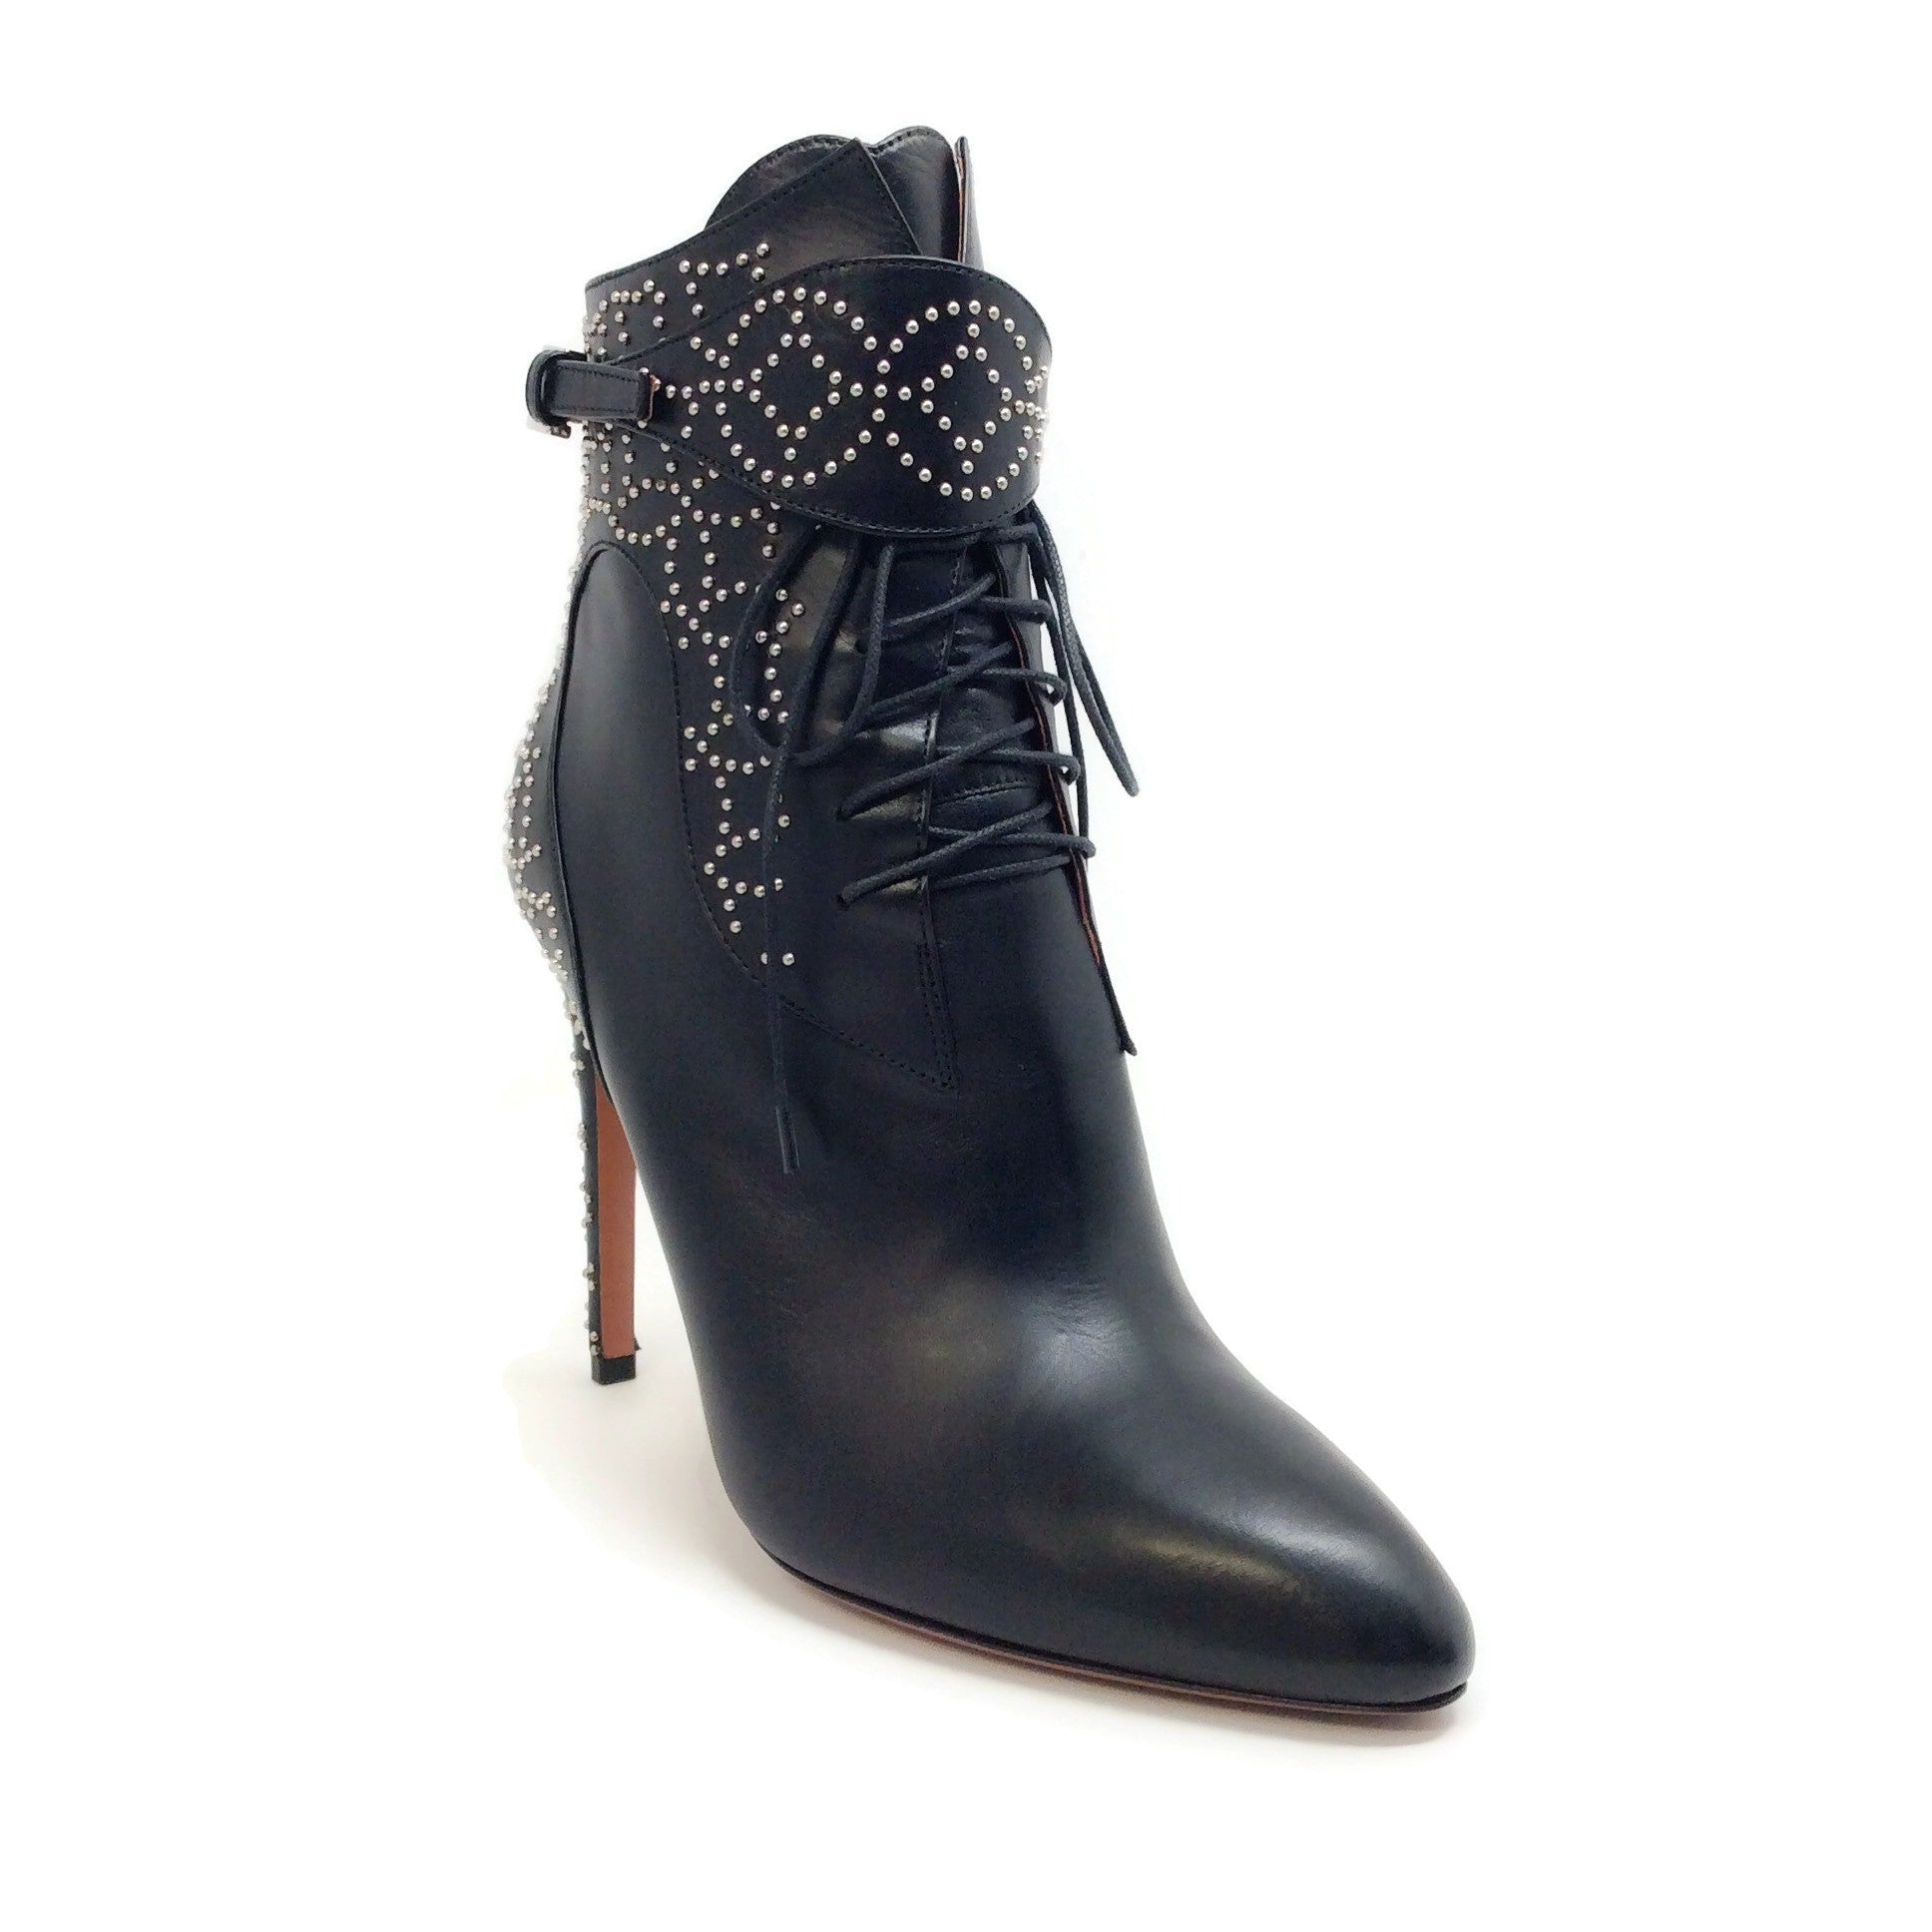 ALAÏA Black / Silver Embellished Lace Up Boots